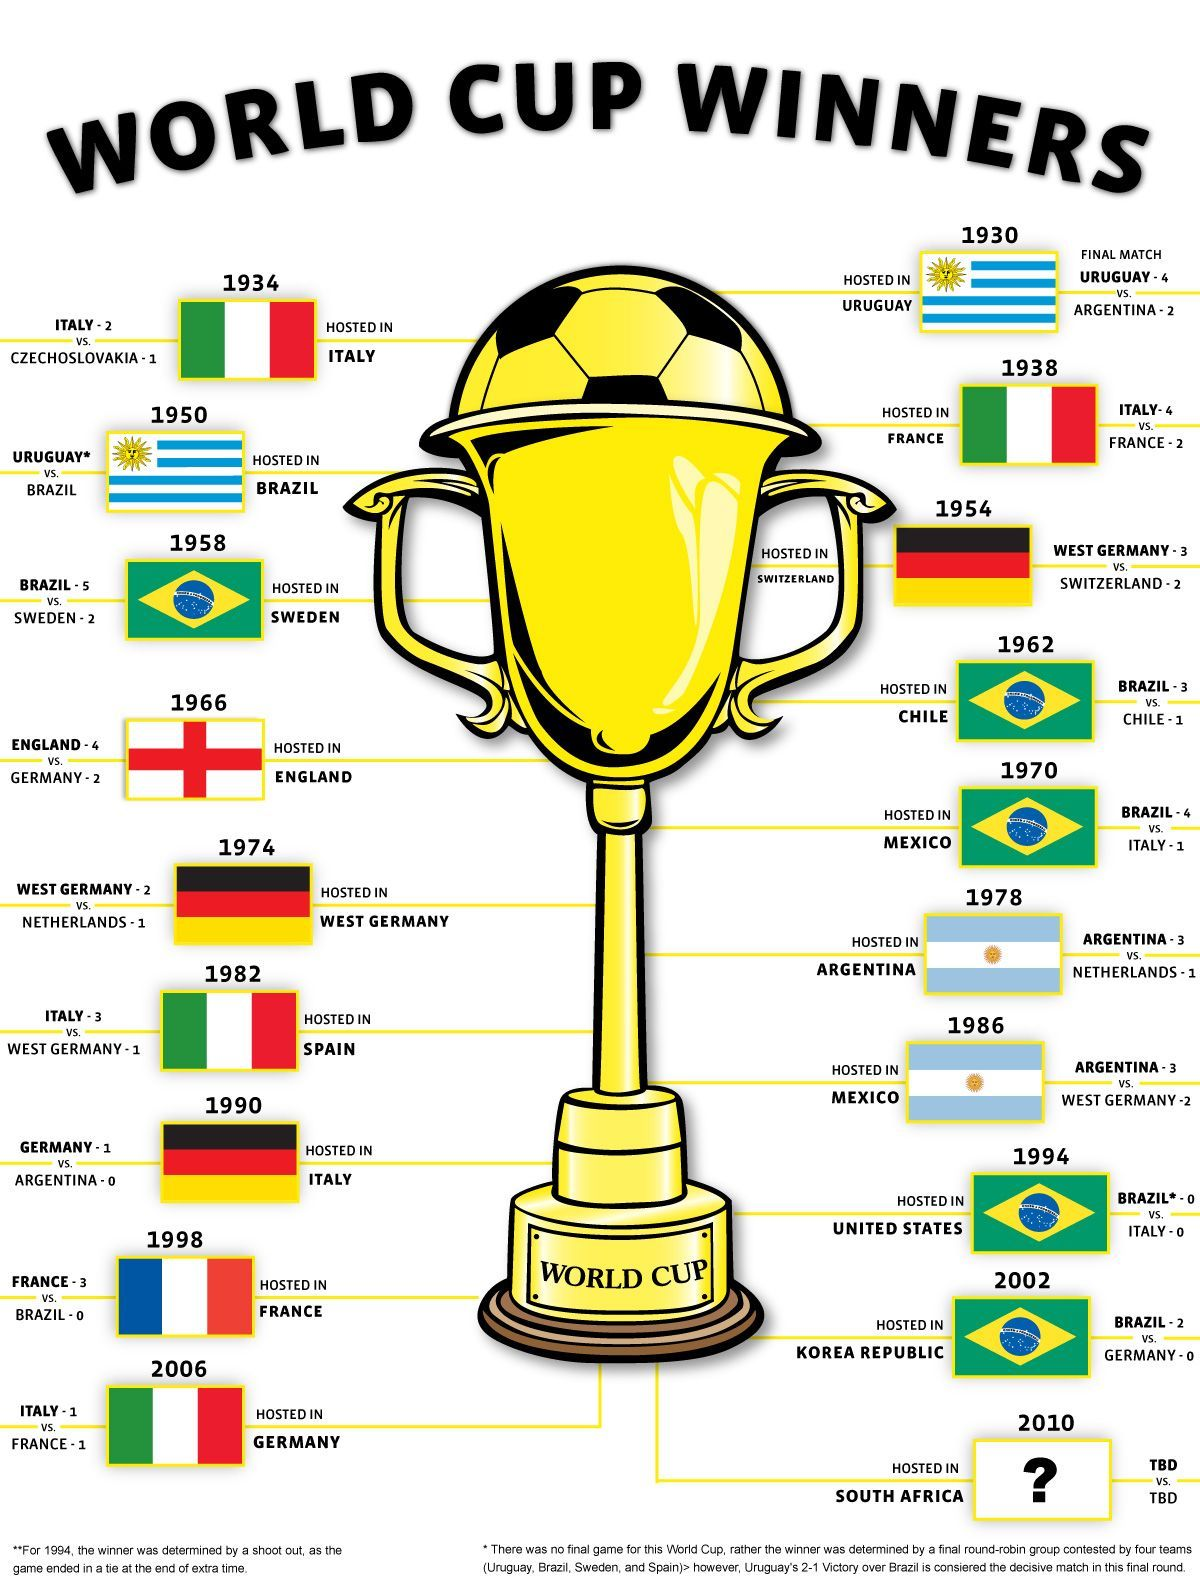 Brazil Won 5 Times The Worldcup Would It Be The 6 Time This Year Just 1 Day Away For The Fifa Worldcup2014 In Braz World Cup Brazil World Cup World Cup 2018